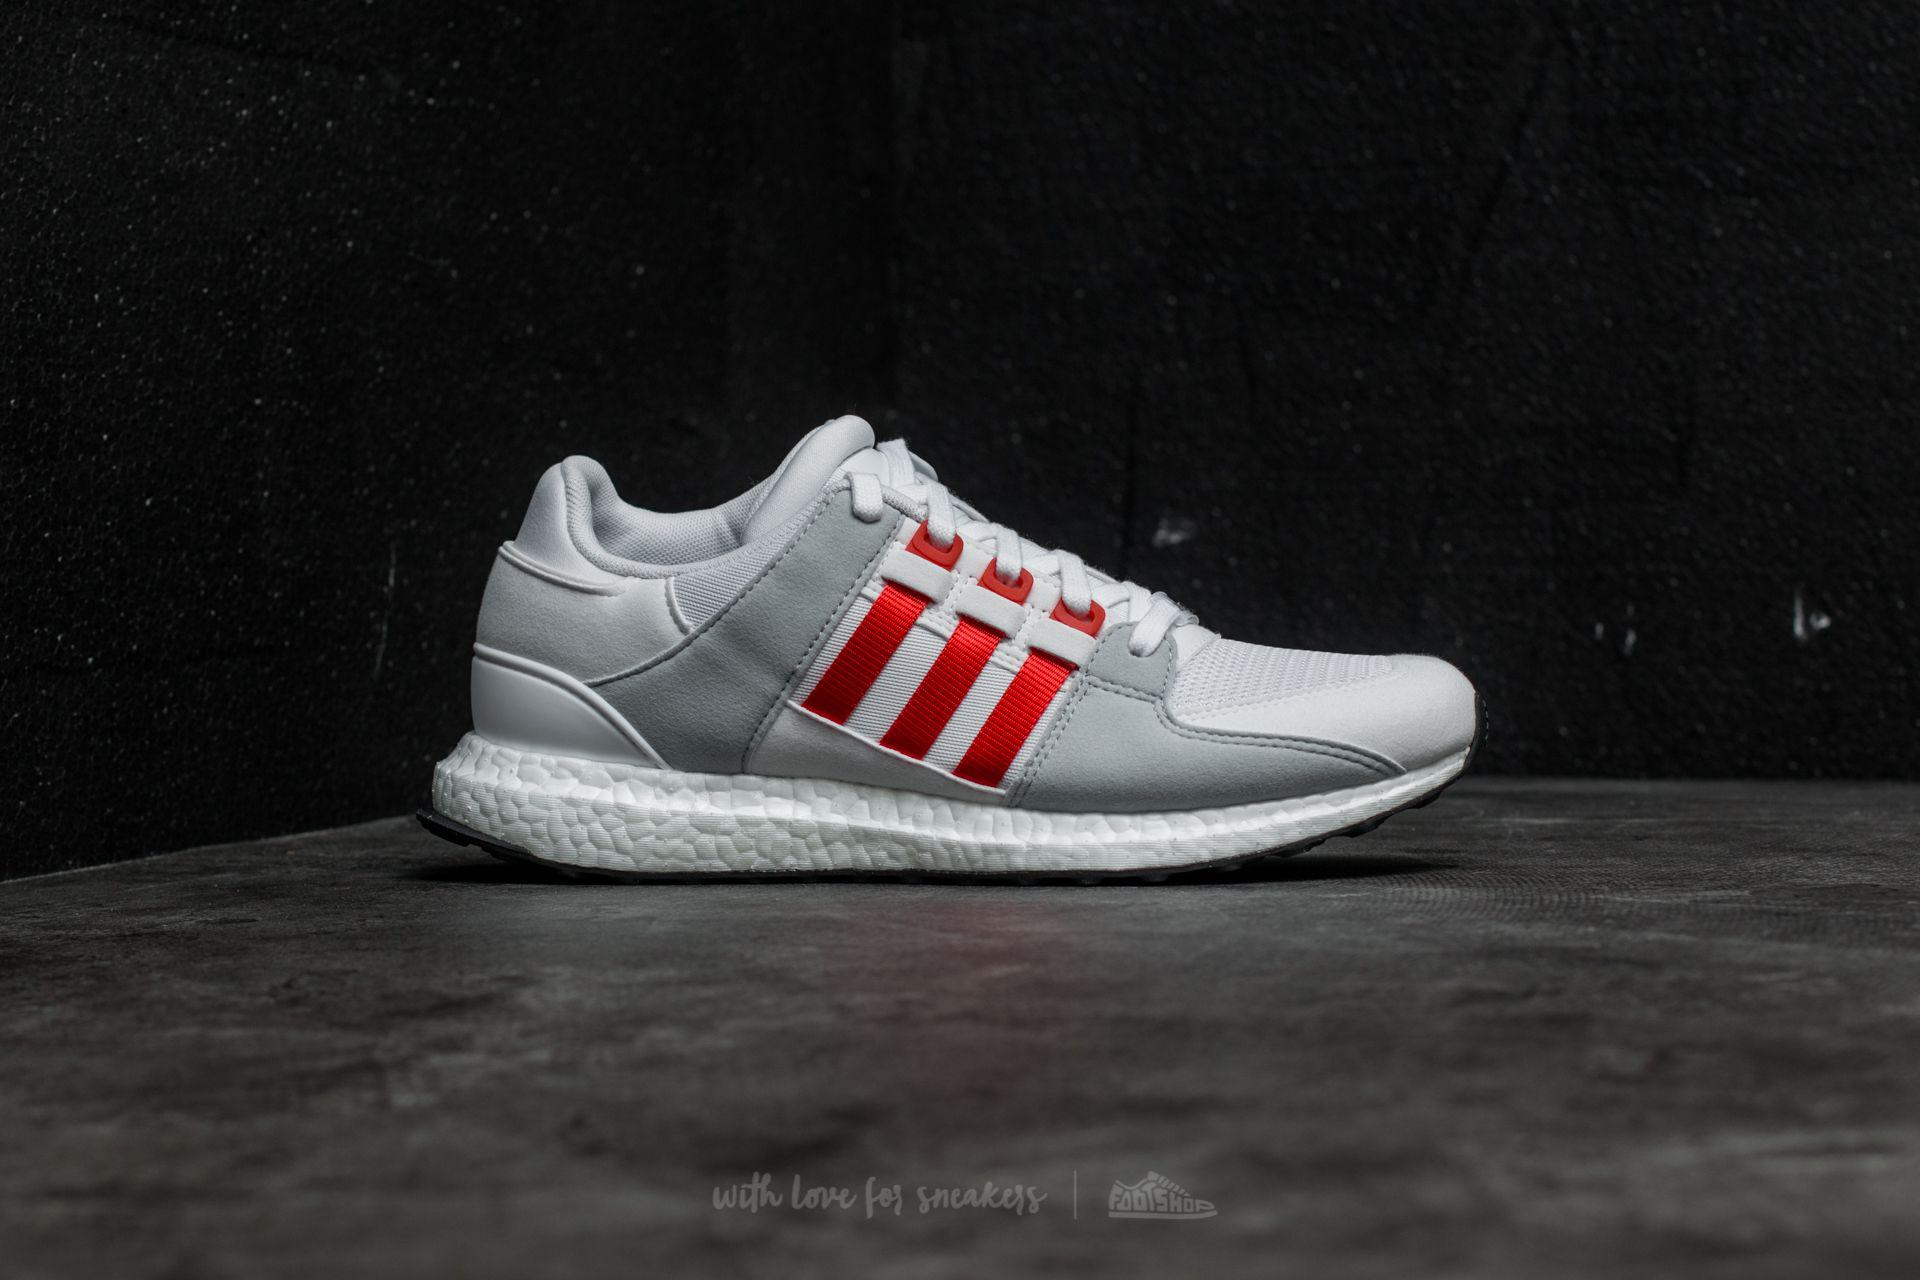 Lyst adidas Originals Adidas EQT Support ultra FTW blanco / Bold